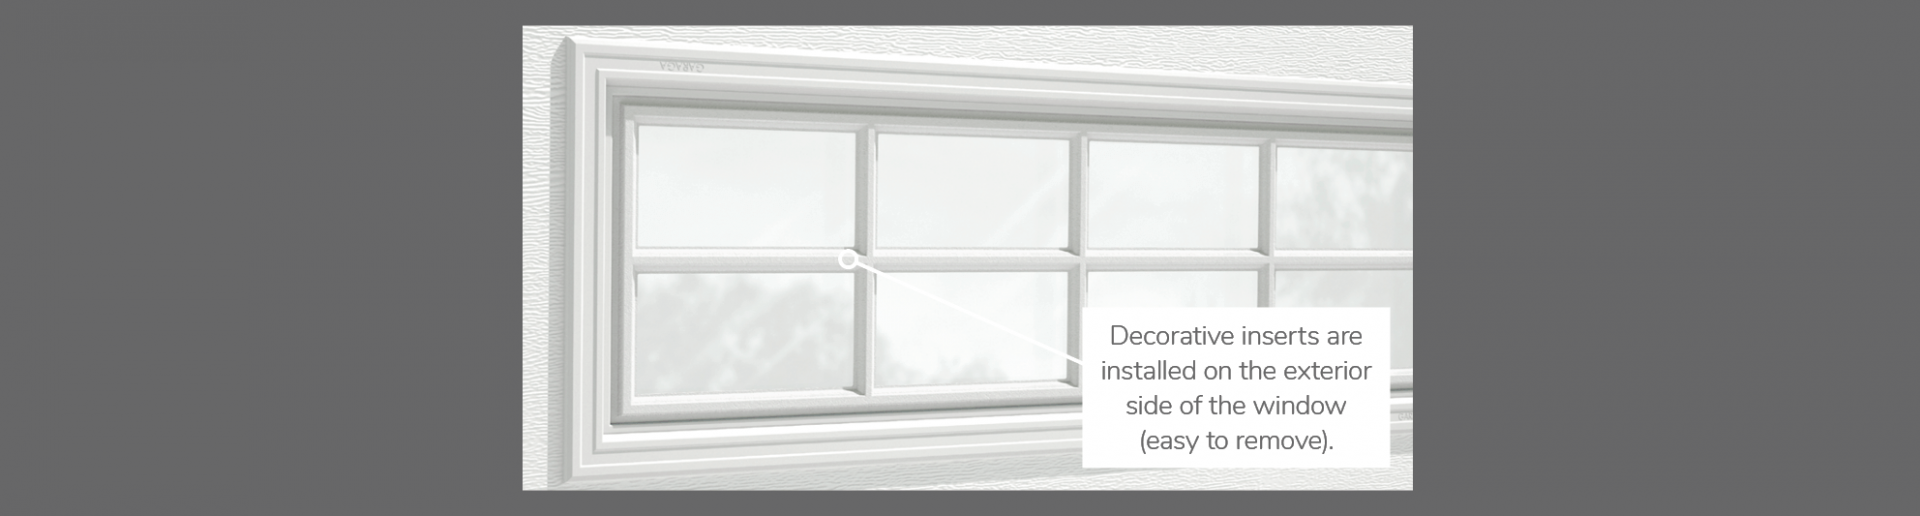 "Stockton Decorative Insert, 40"" x 13"", 21"" x 13"", 41"" x 16"" or 20"" x 13"", available for door R-16 and 3 layers - Polystyrene"